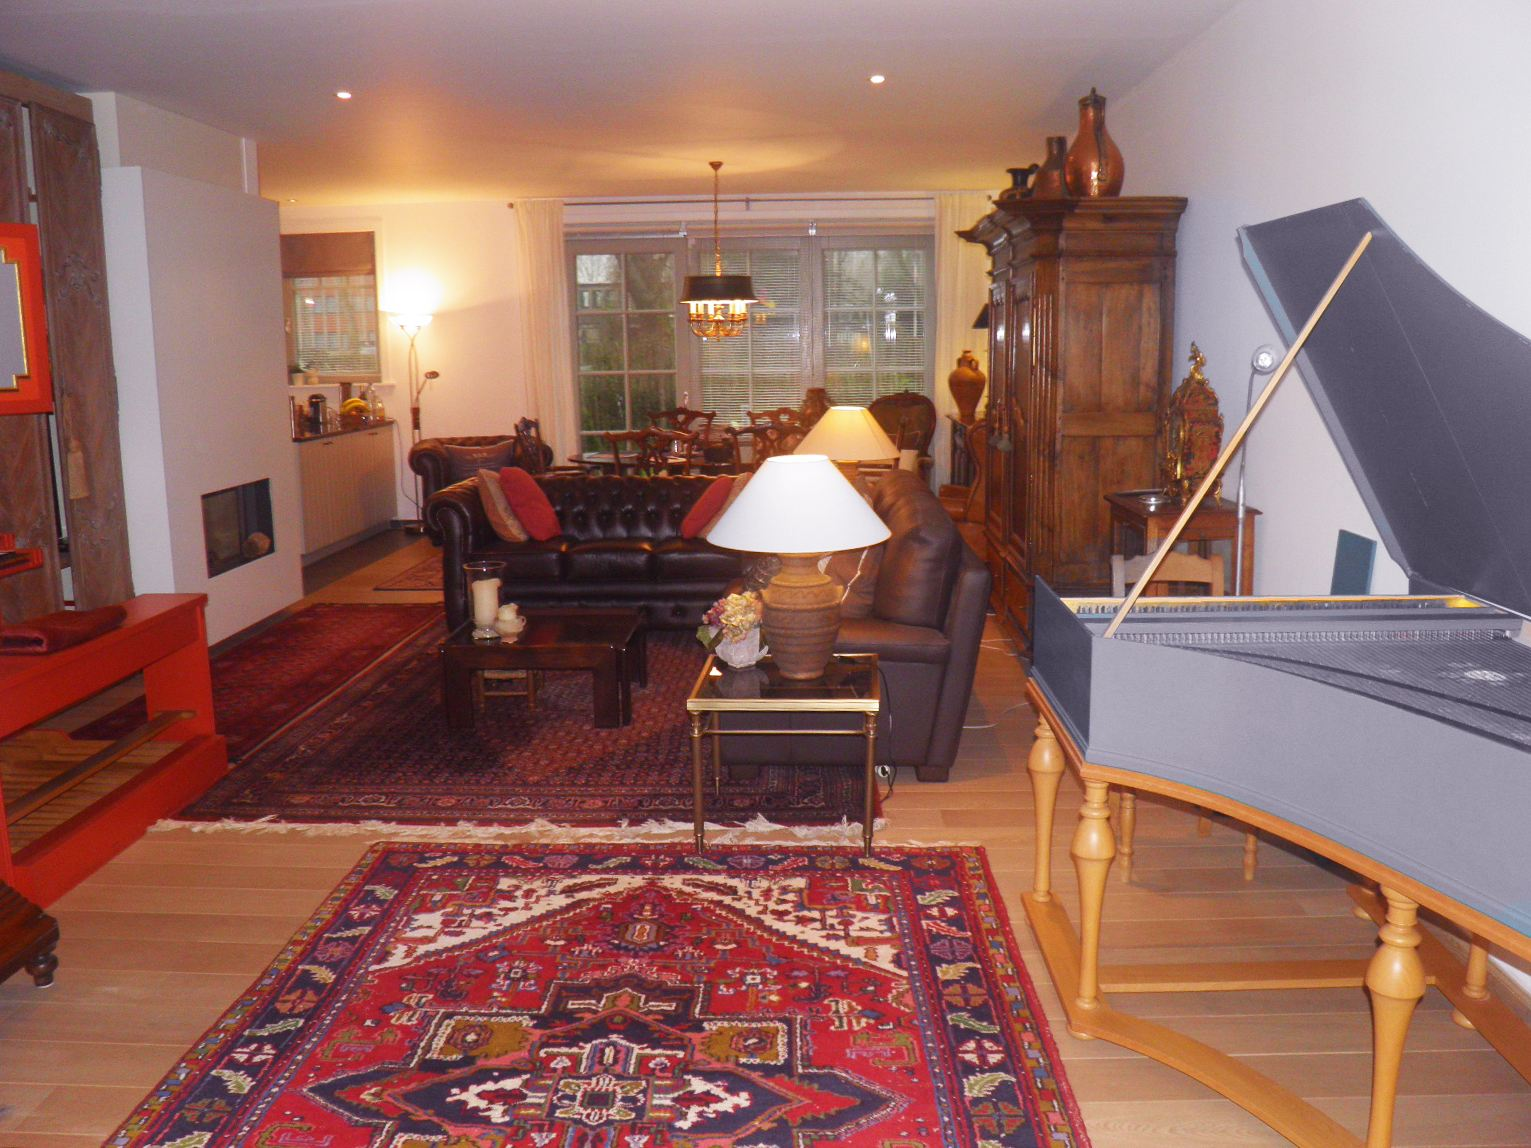 Property For Sale at SAINT-IDESBLAD (B) 2013 house, Exclusive area, 320 m2 hab.